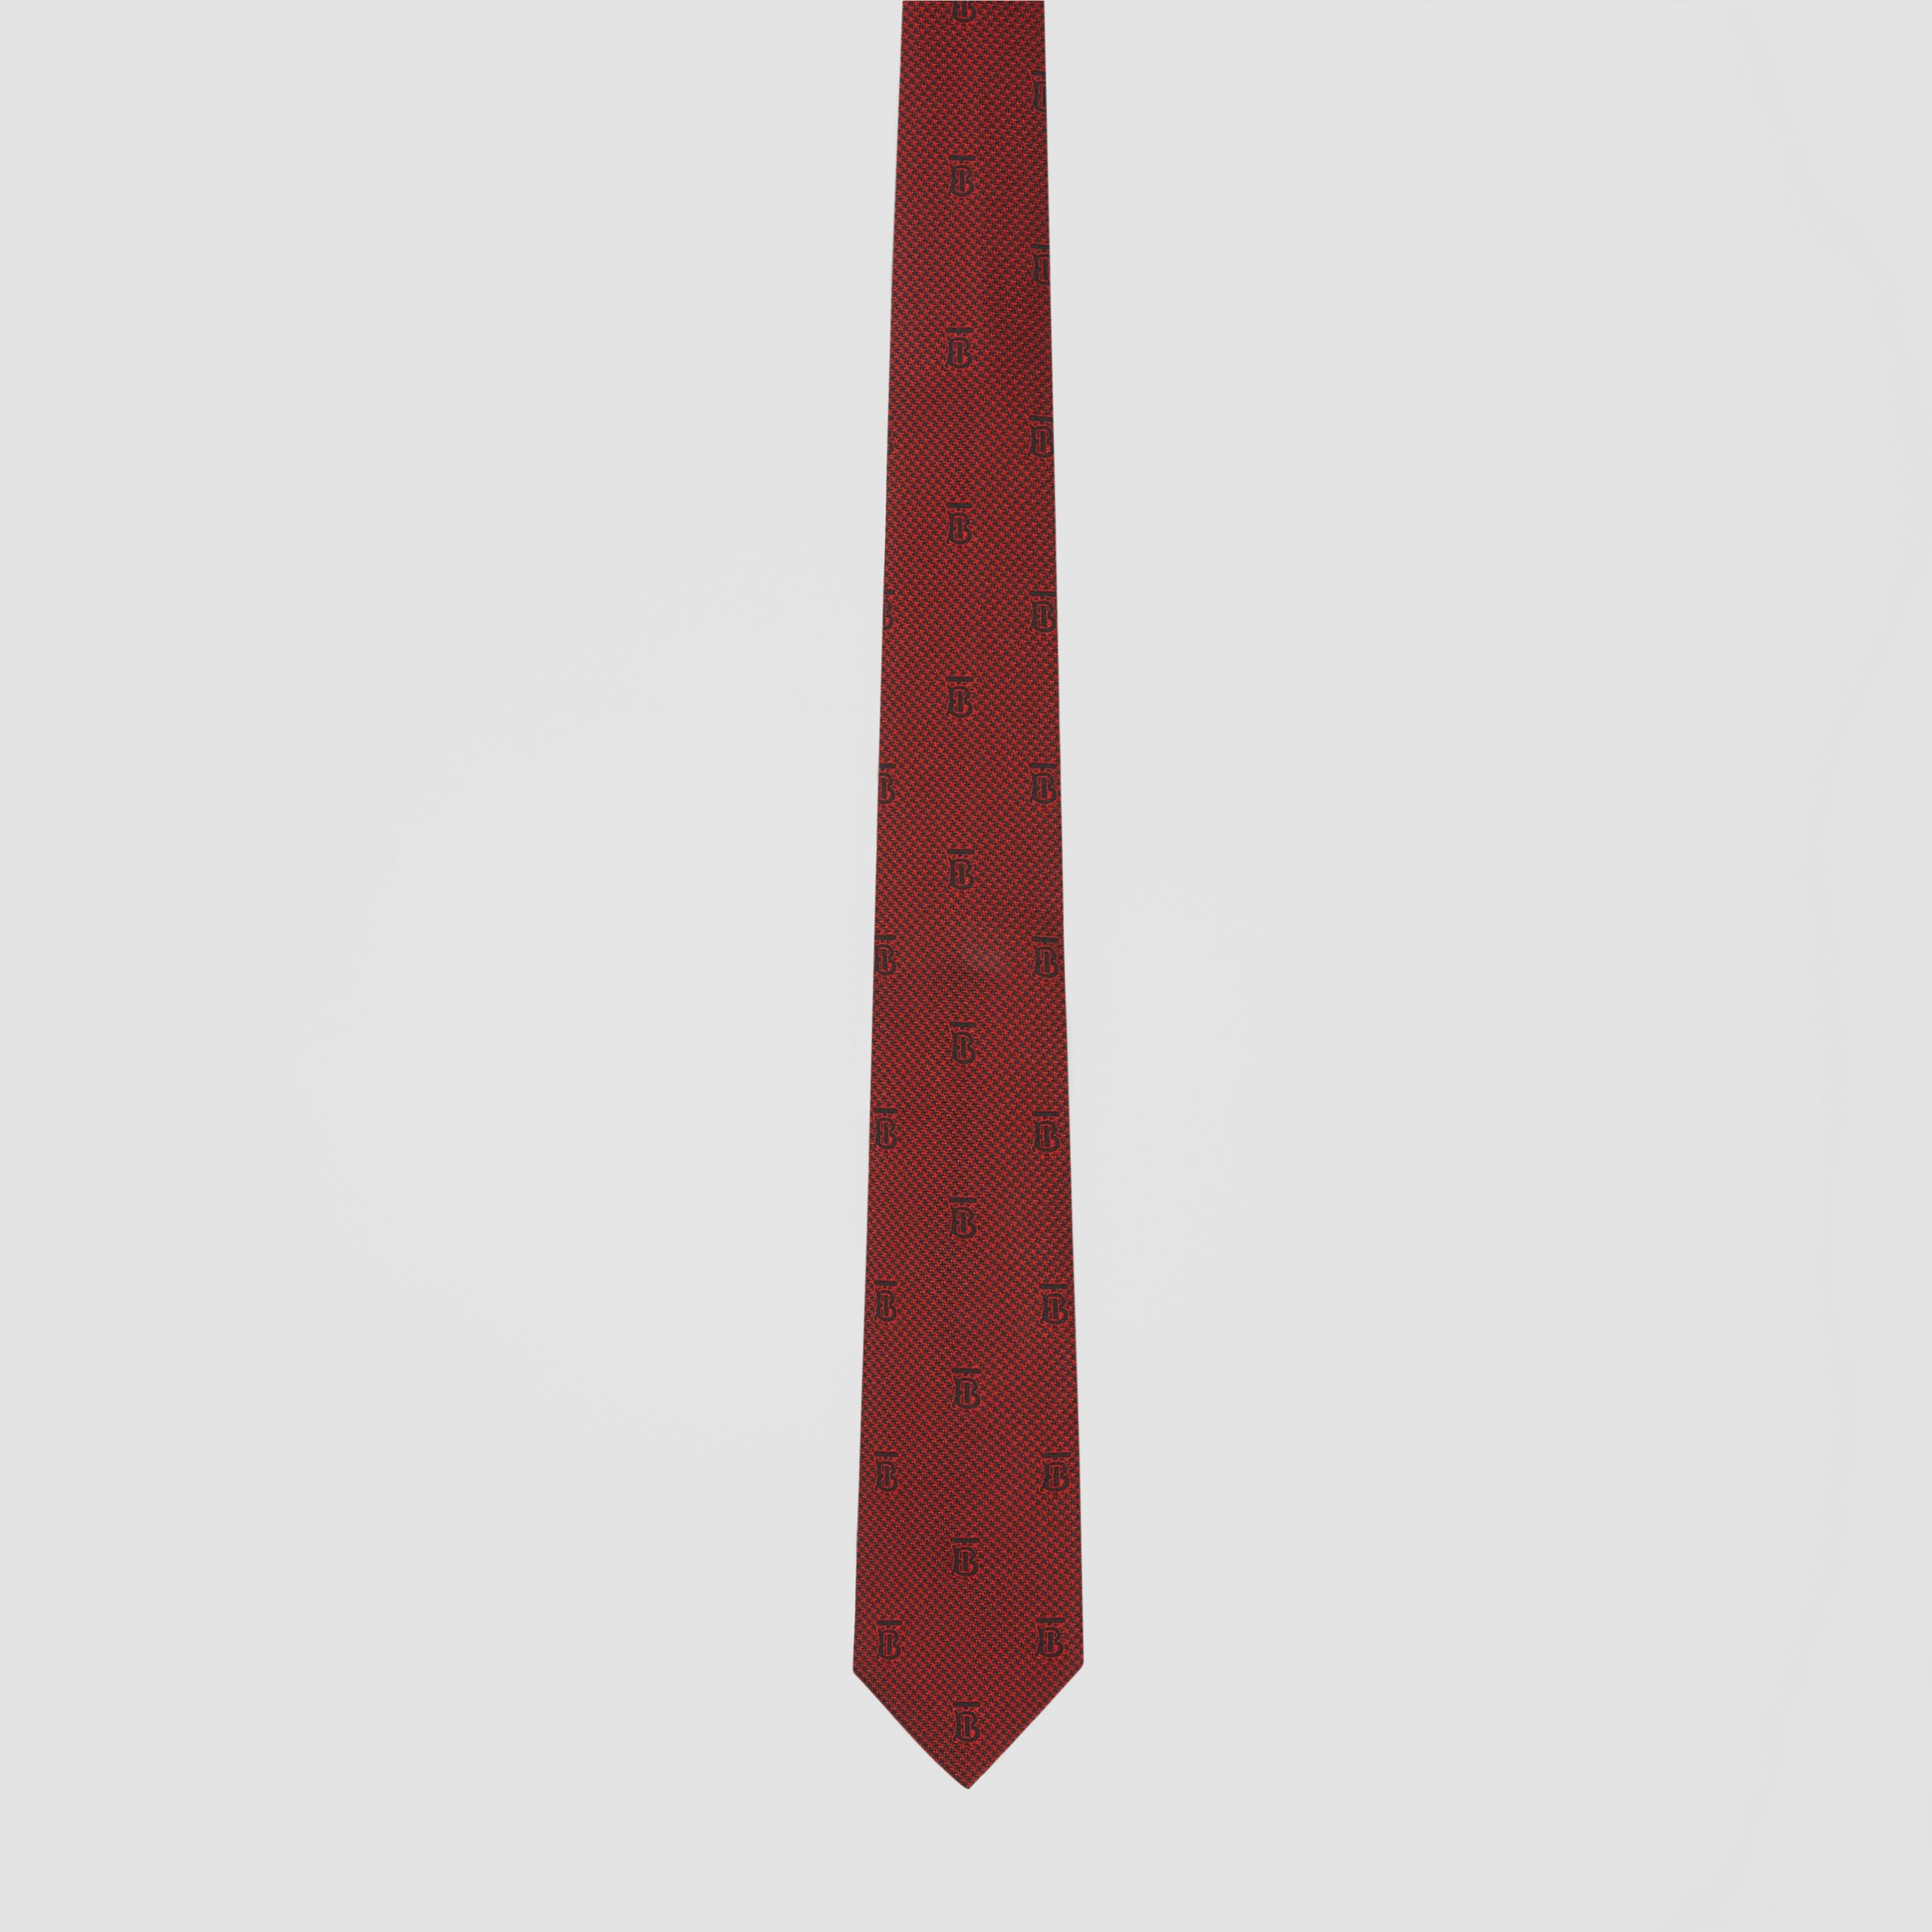 Classic Cut Puppytooth Check Silk Tie in Parade Red - Men | Burberry - 4